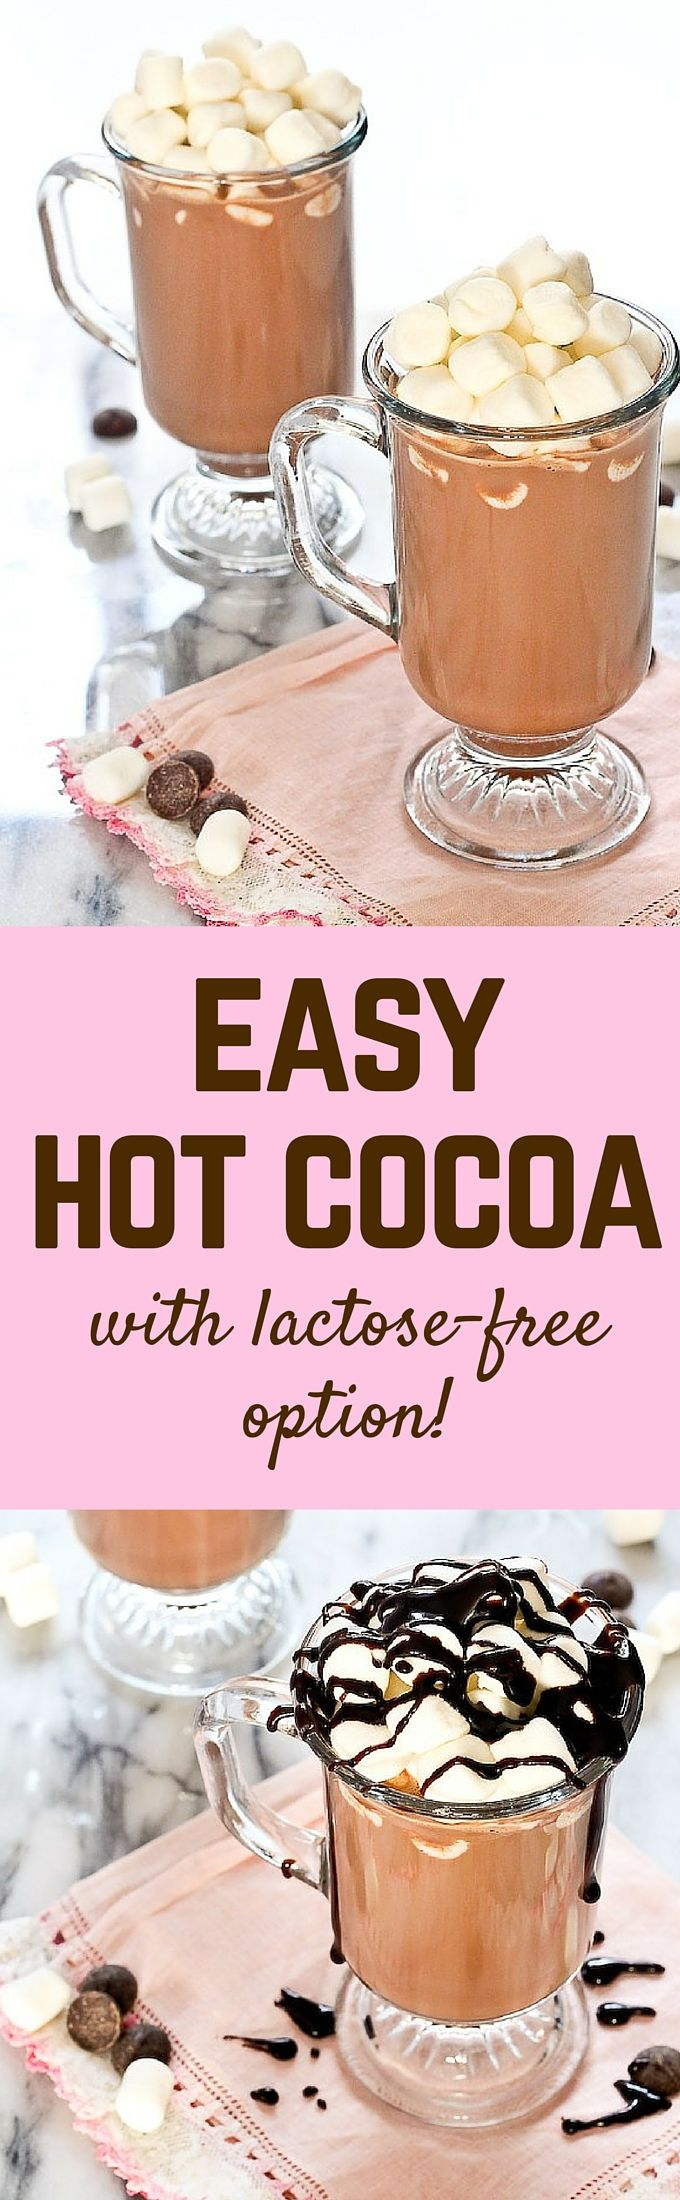 29 best Food to make images on Pinterest | Hot chocolate recipes ...